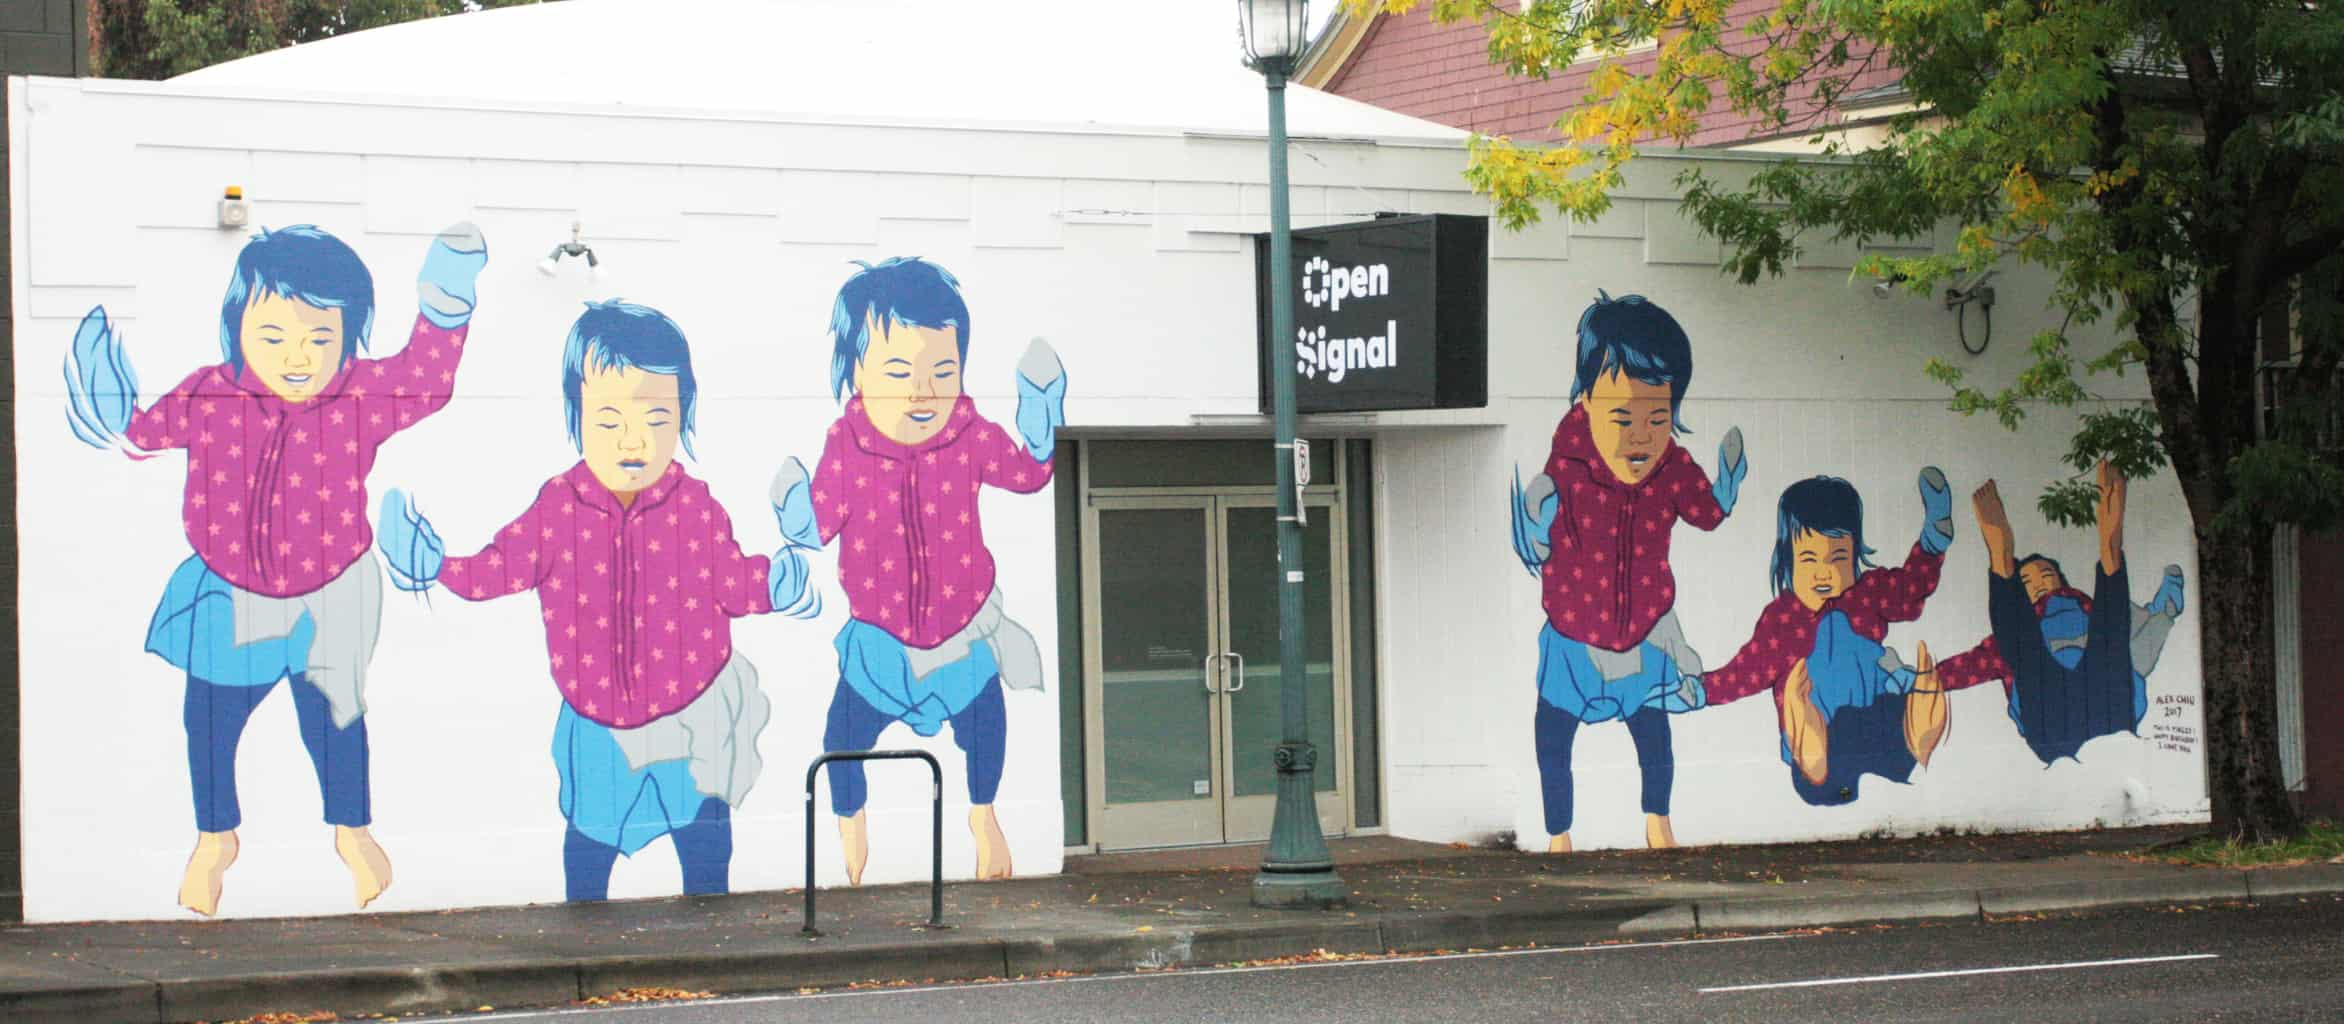 Alex Chiu's mural featuring 6 frames of his daughter jumping up and down a bed